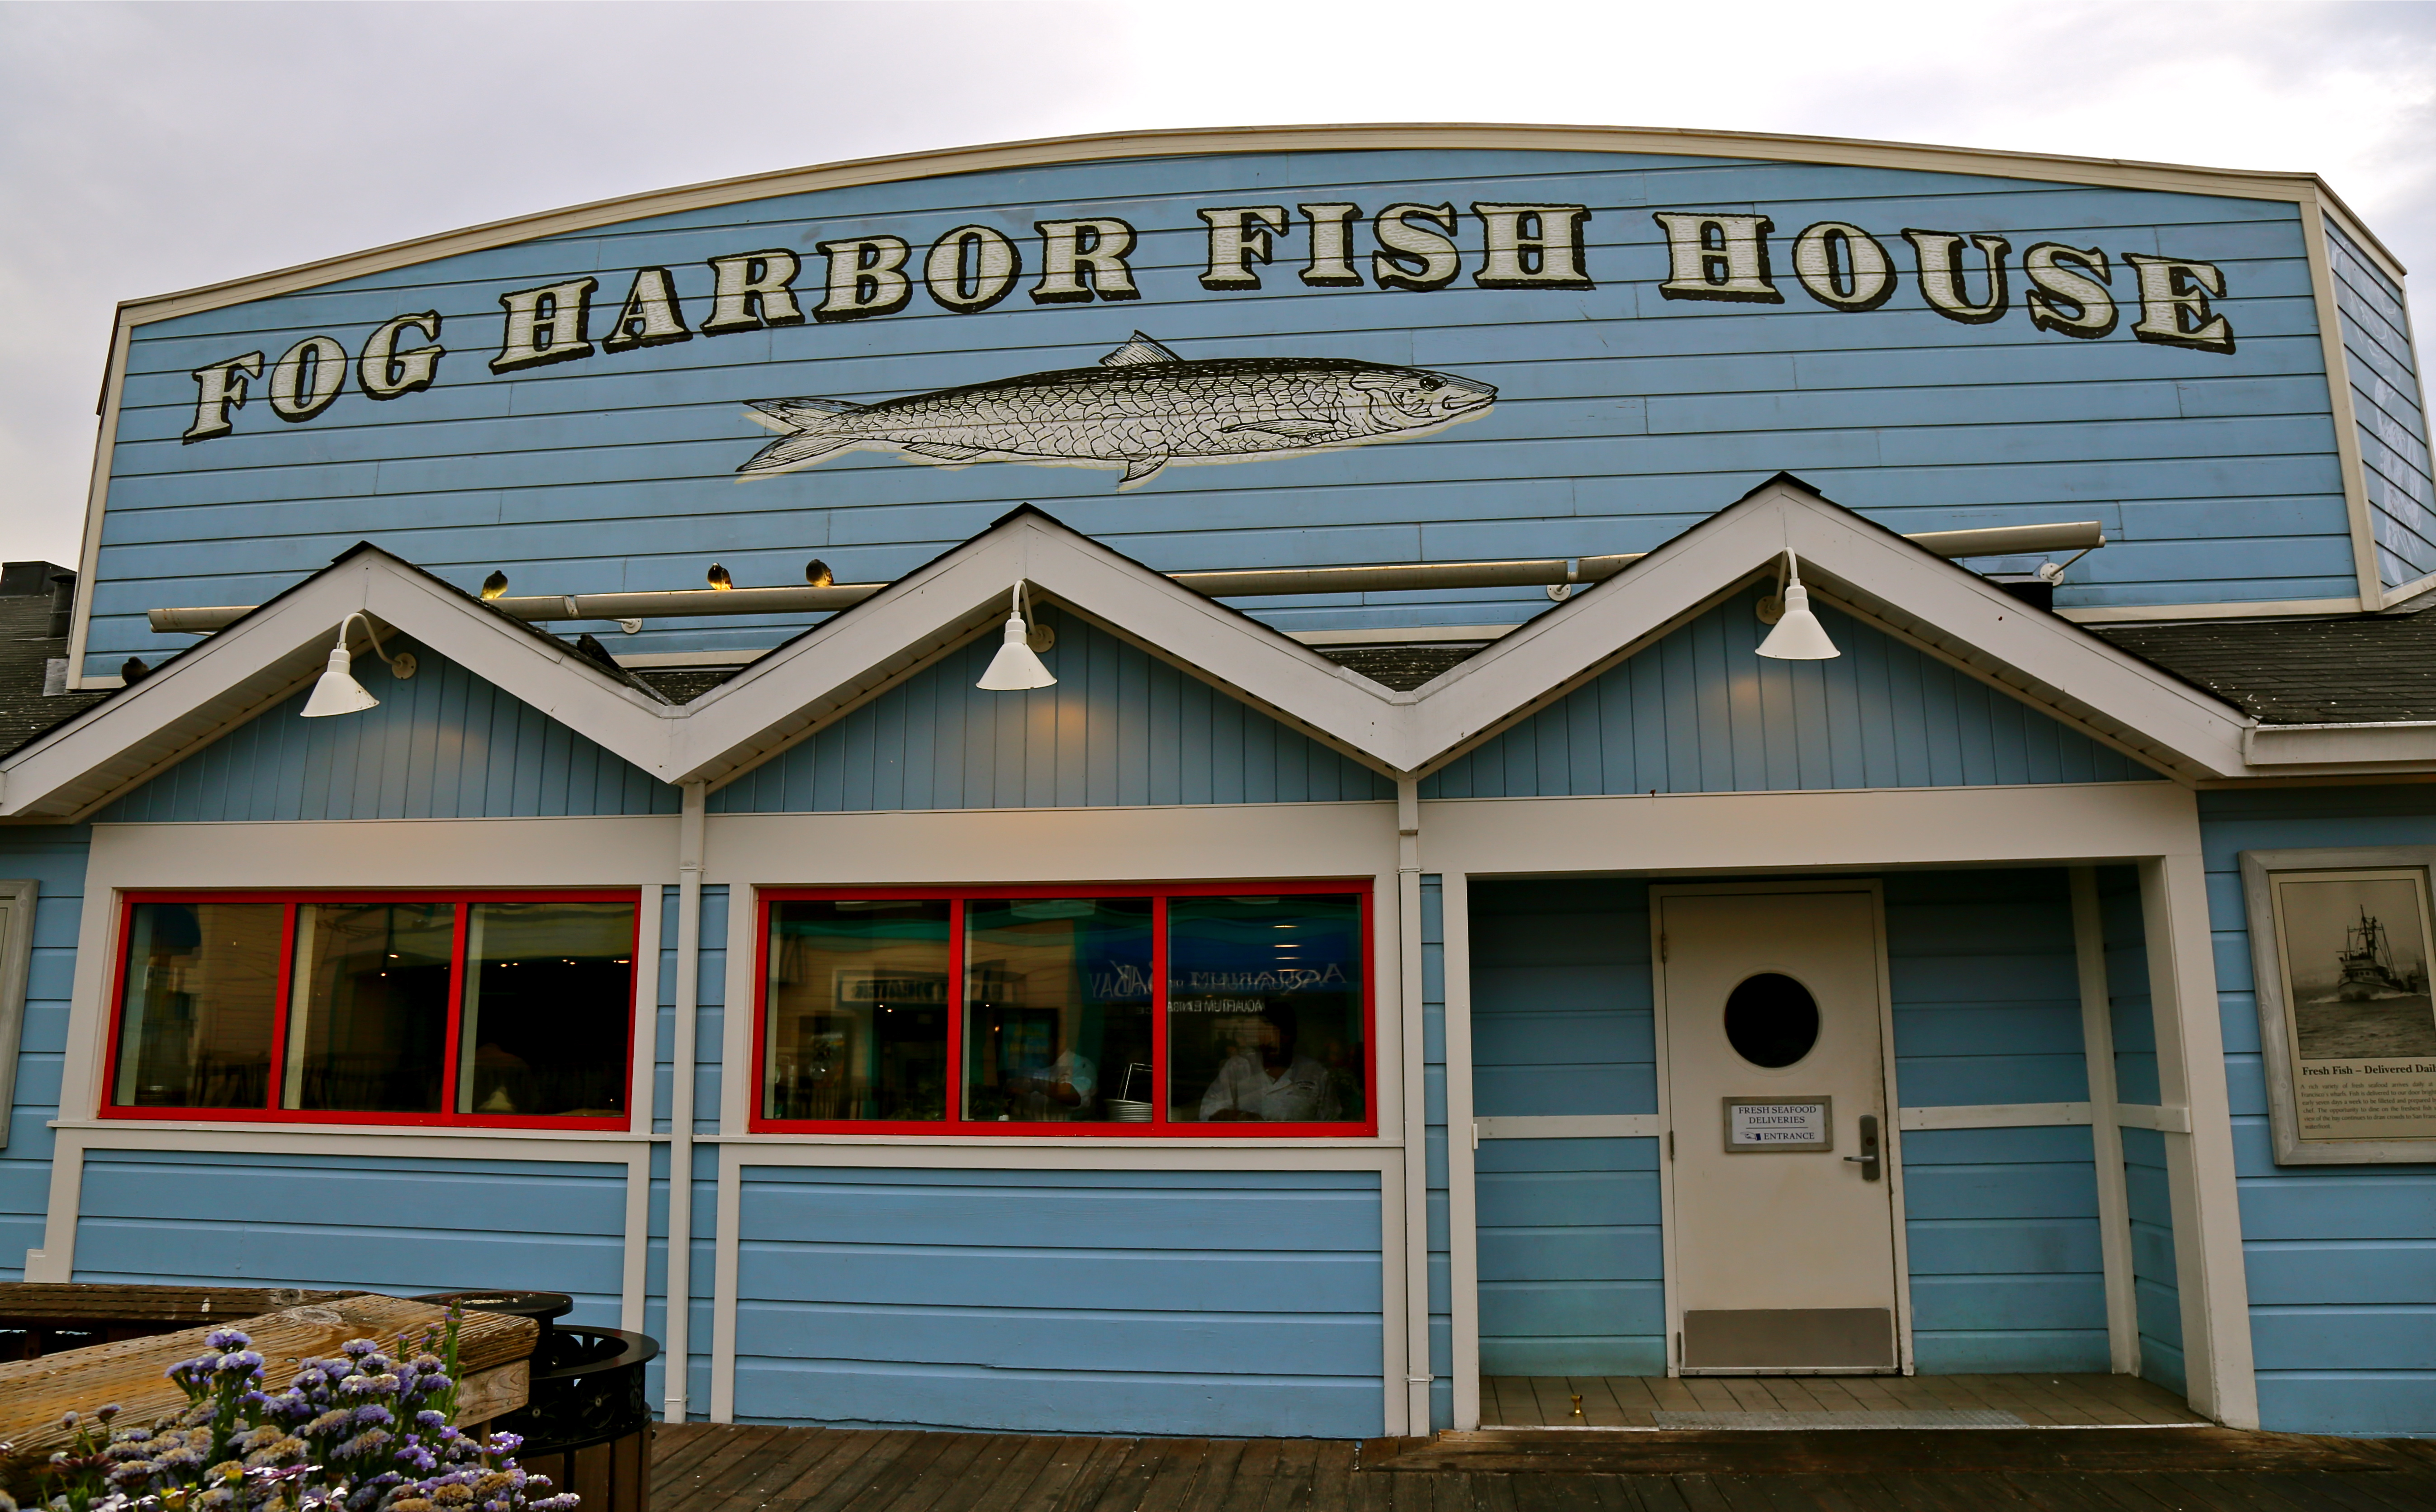 The fog harbor fish house lost in the usa for Fog harbor fish house san francisco